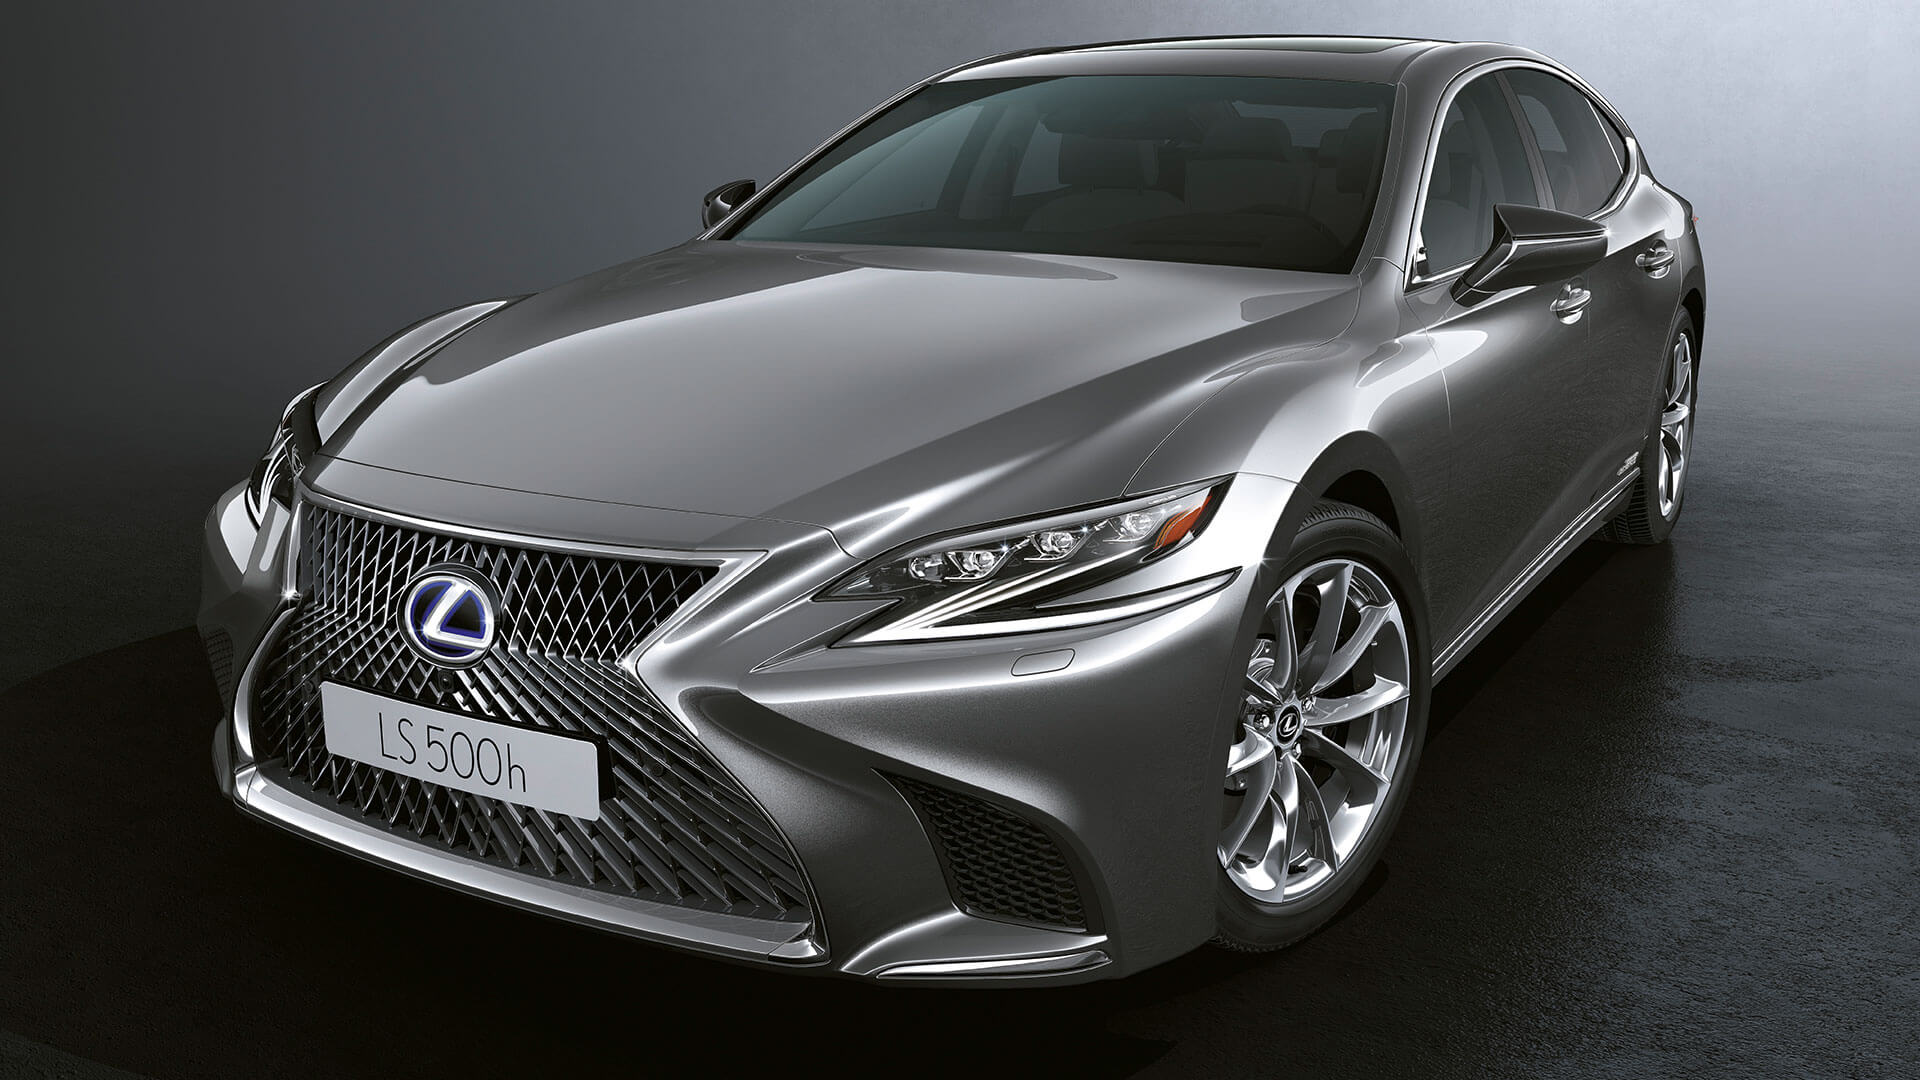 2018 lexus ls features spindle grille